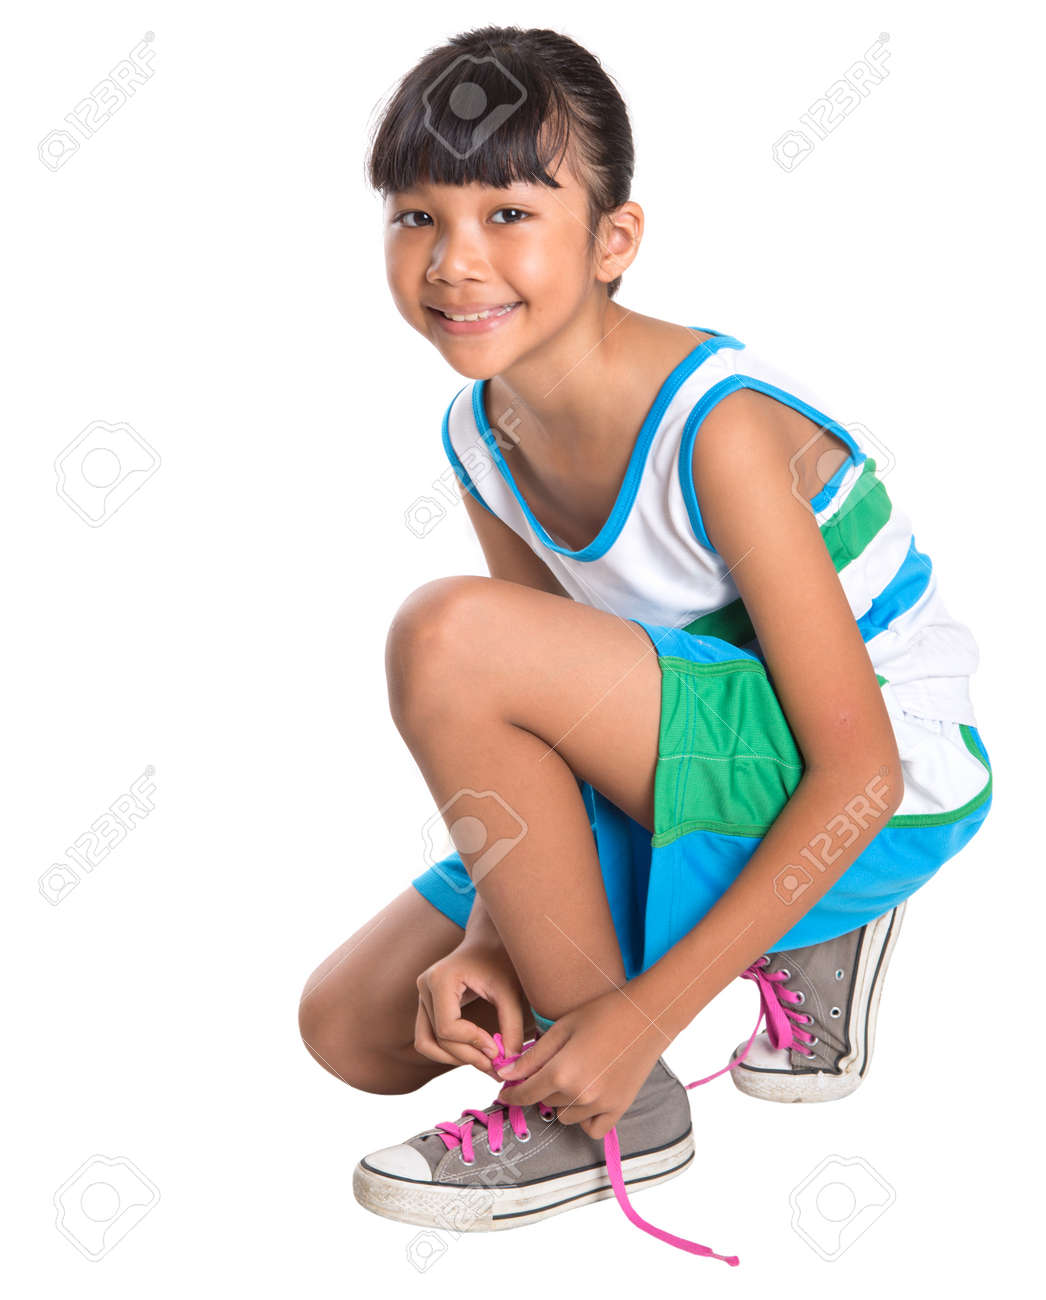 c0a9002015ba2 Young Girl With Athletic Attire Tying Her Shoe Laces Stock Photo ...